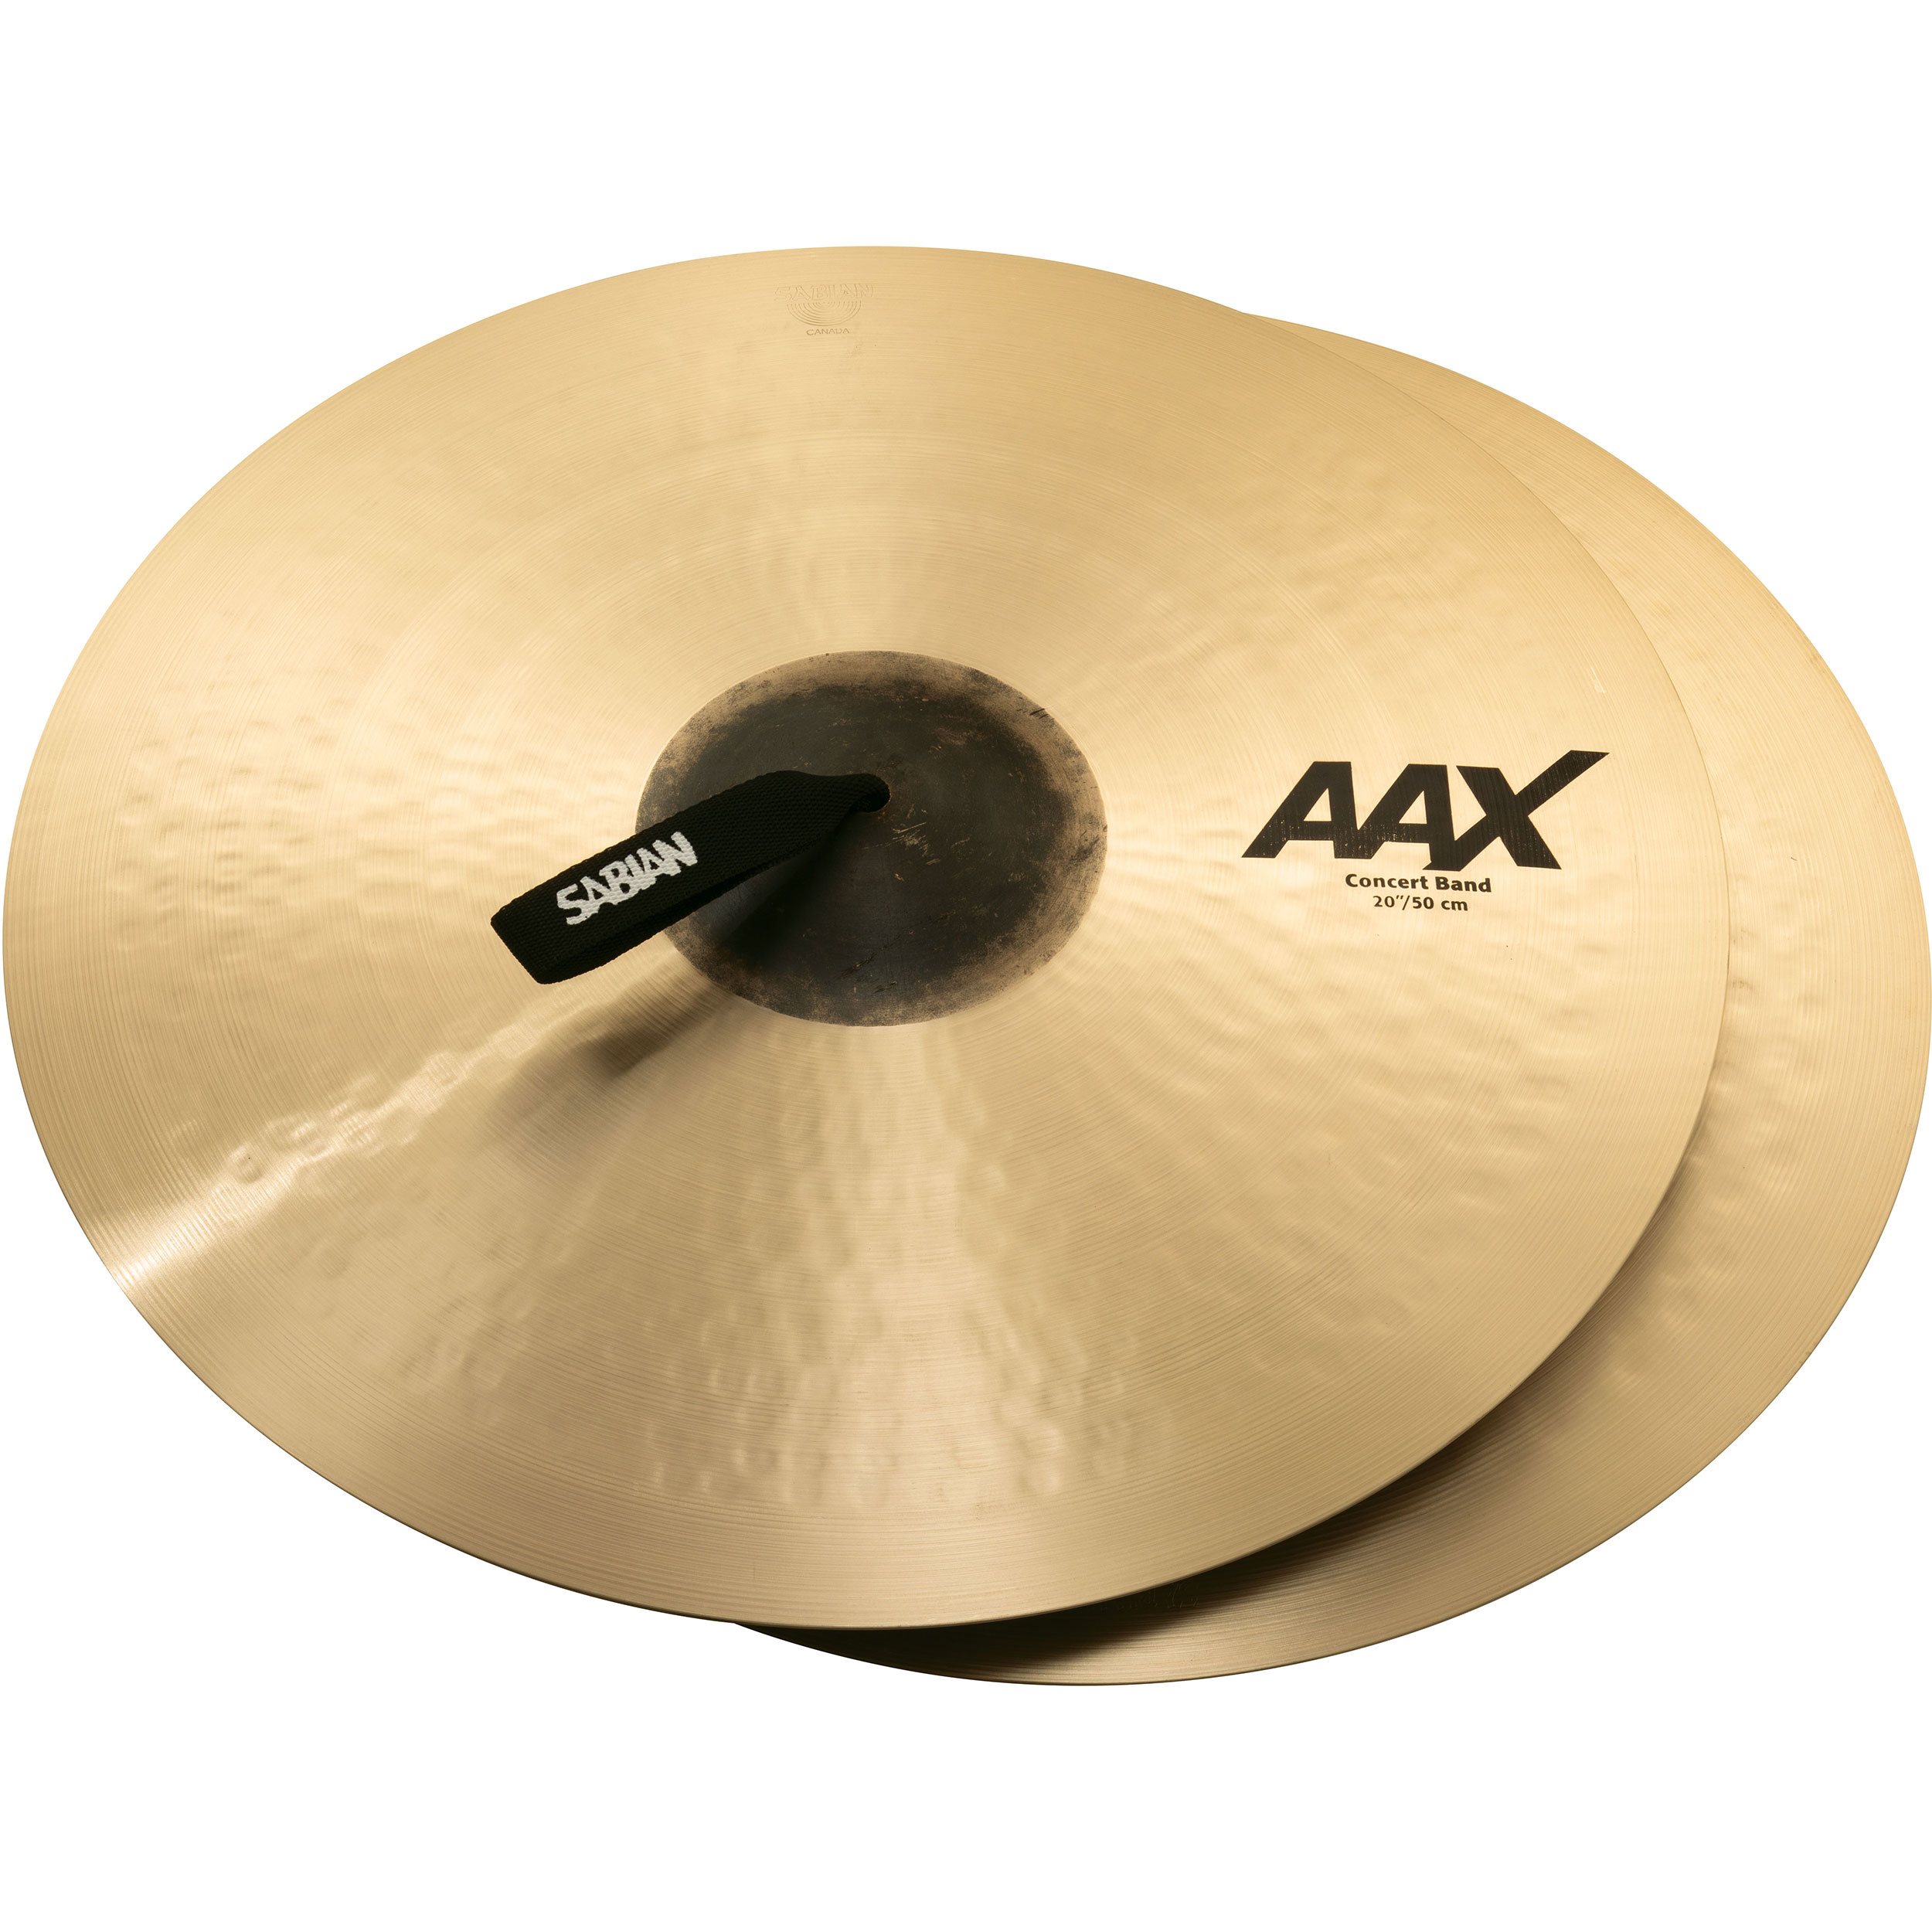 "Sabian 20"" AAX Concert Band Crash Cymbal Pair"